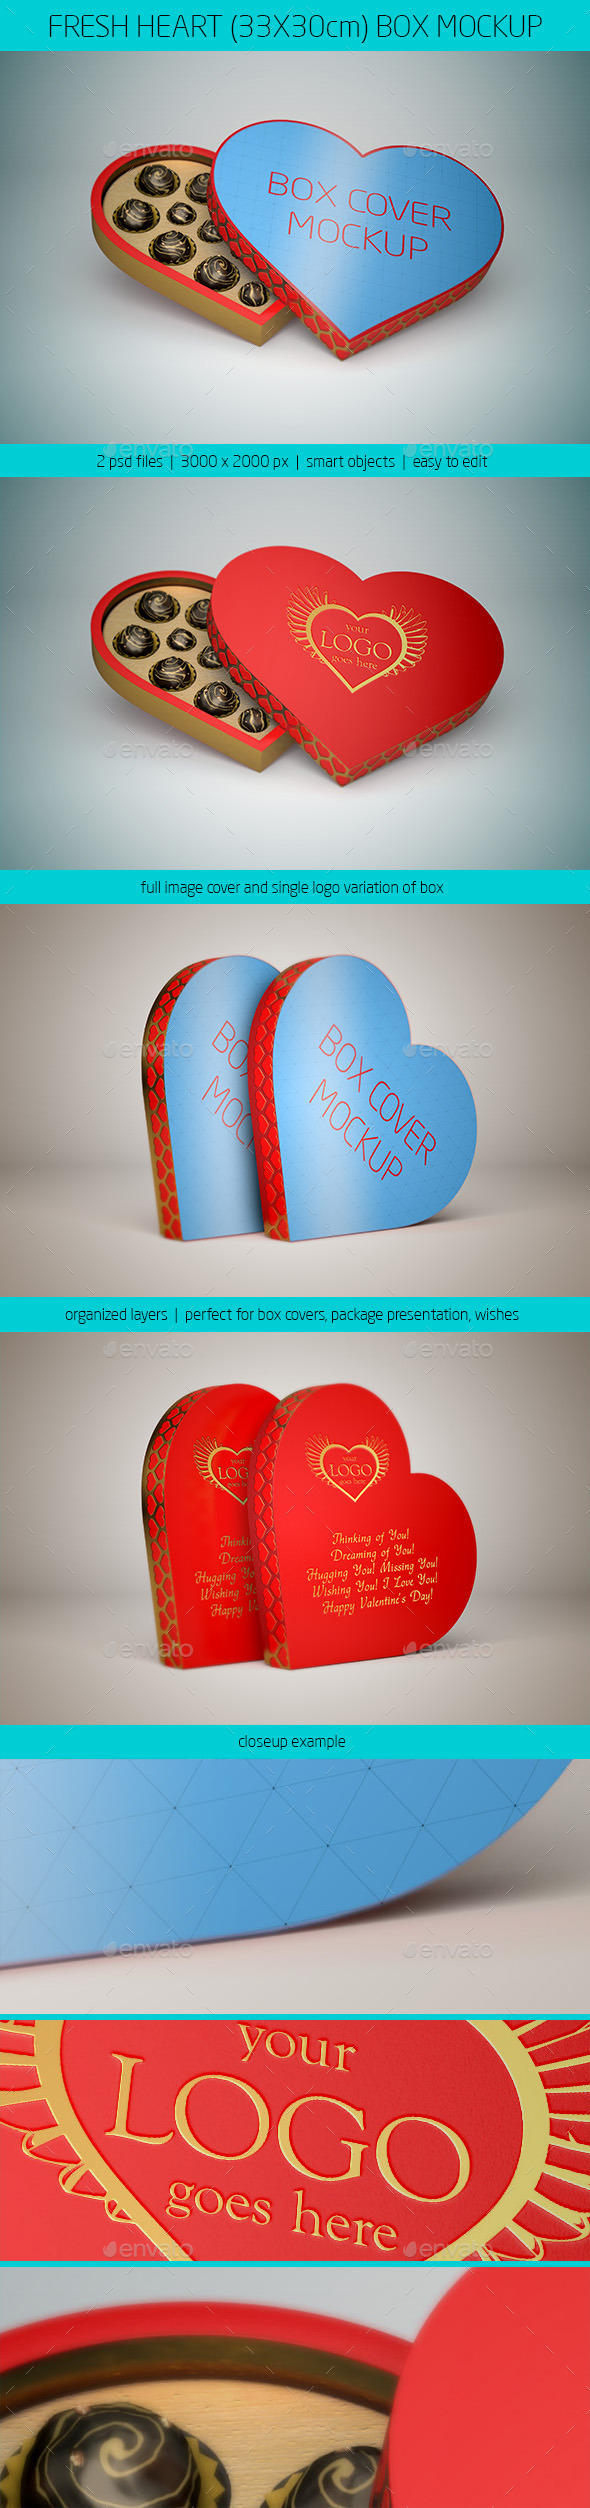 GraphicRiver Fresh Heart 33x30cm Box Mockup 9957649